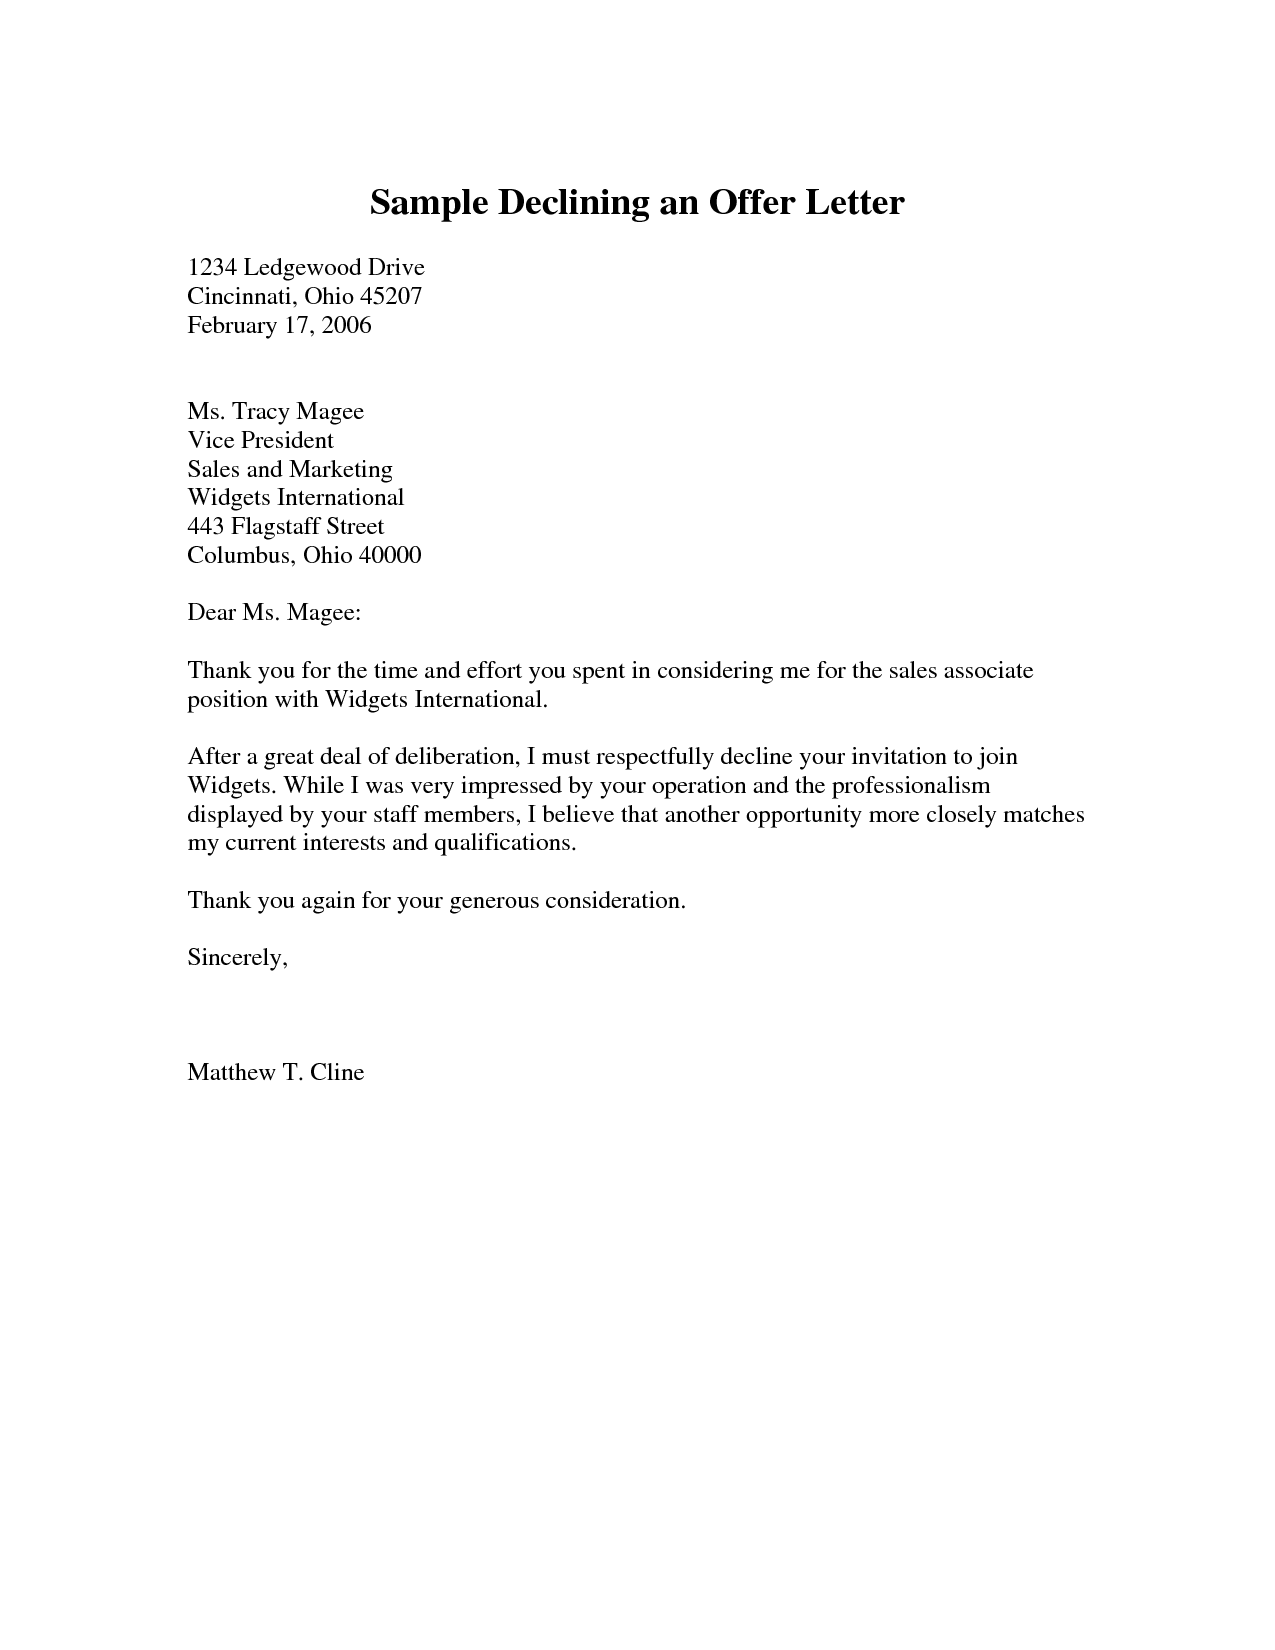 Job Proposal Letter. Resign Letter Sample Word Format Apologize For ...